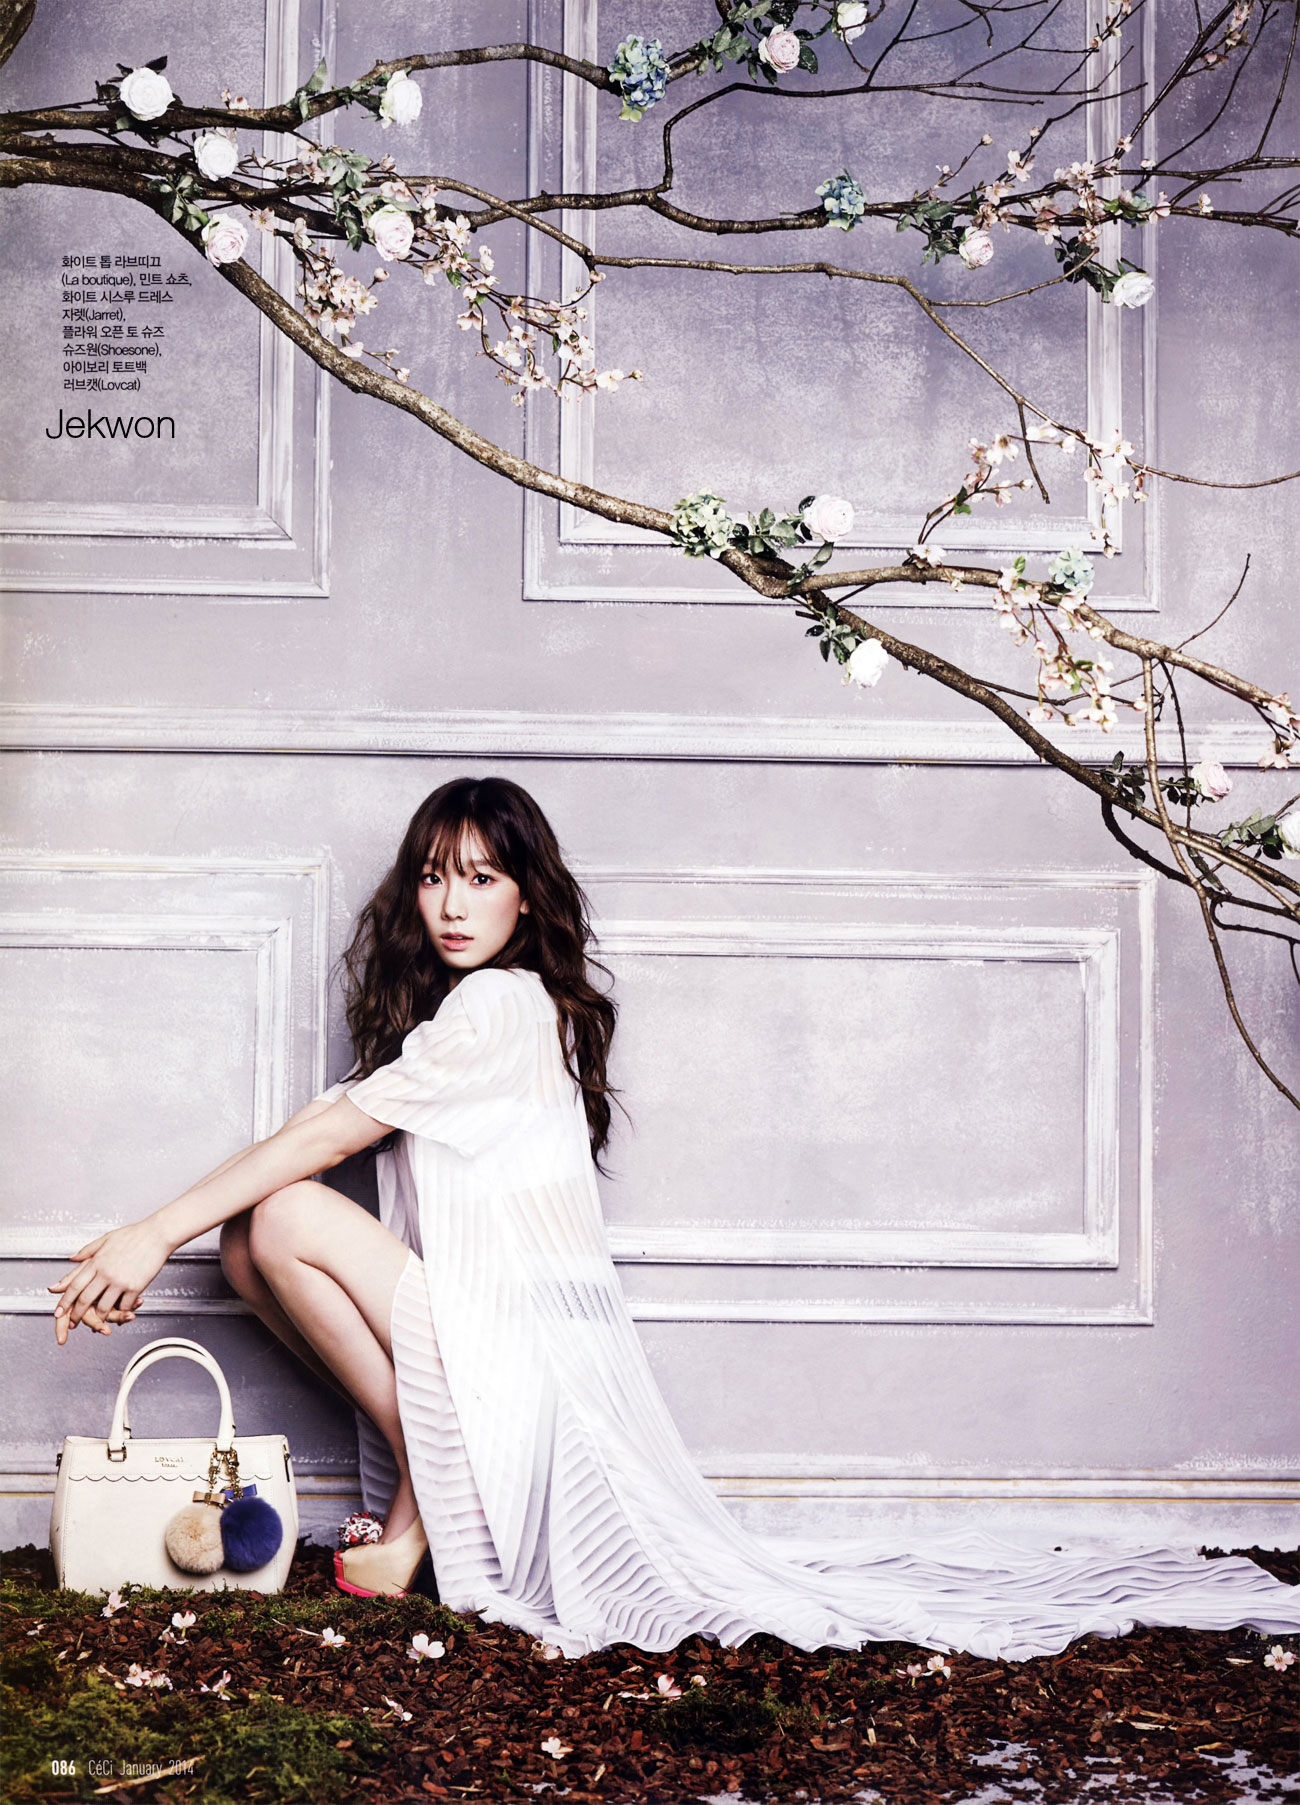 SNSD Taeyeon Ceci Magazine January 2014